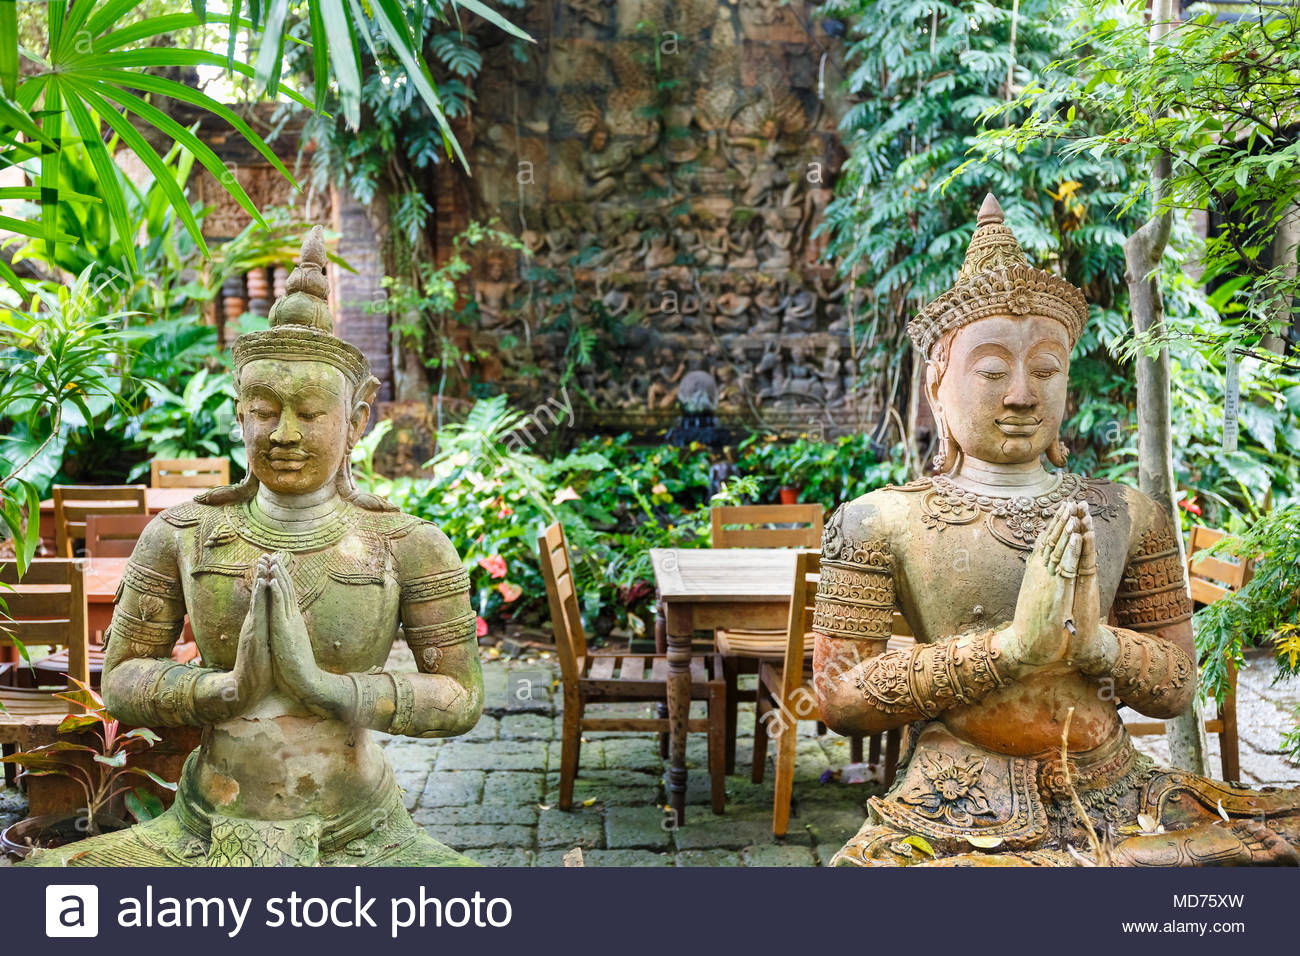 Two Buddha statues in a garden in Chiang Mai Thailand - Stock Image